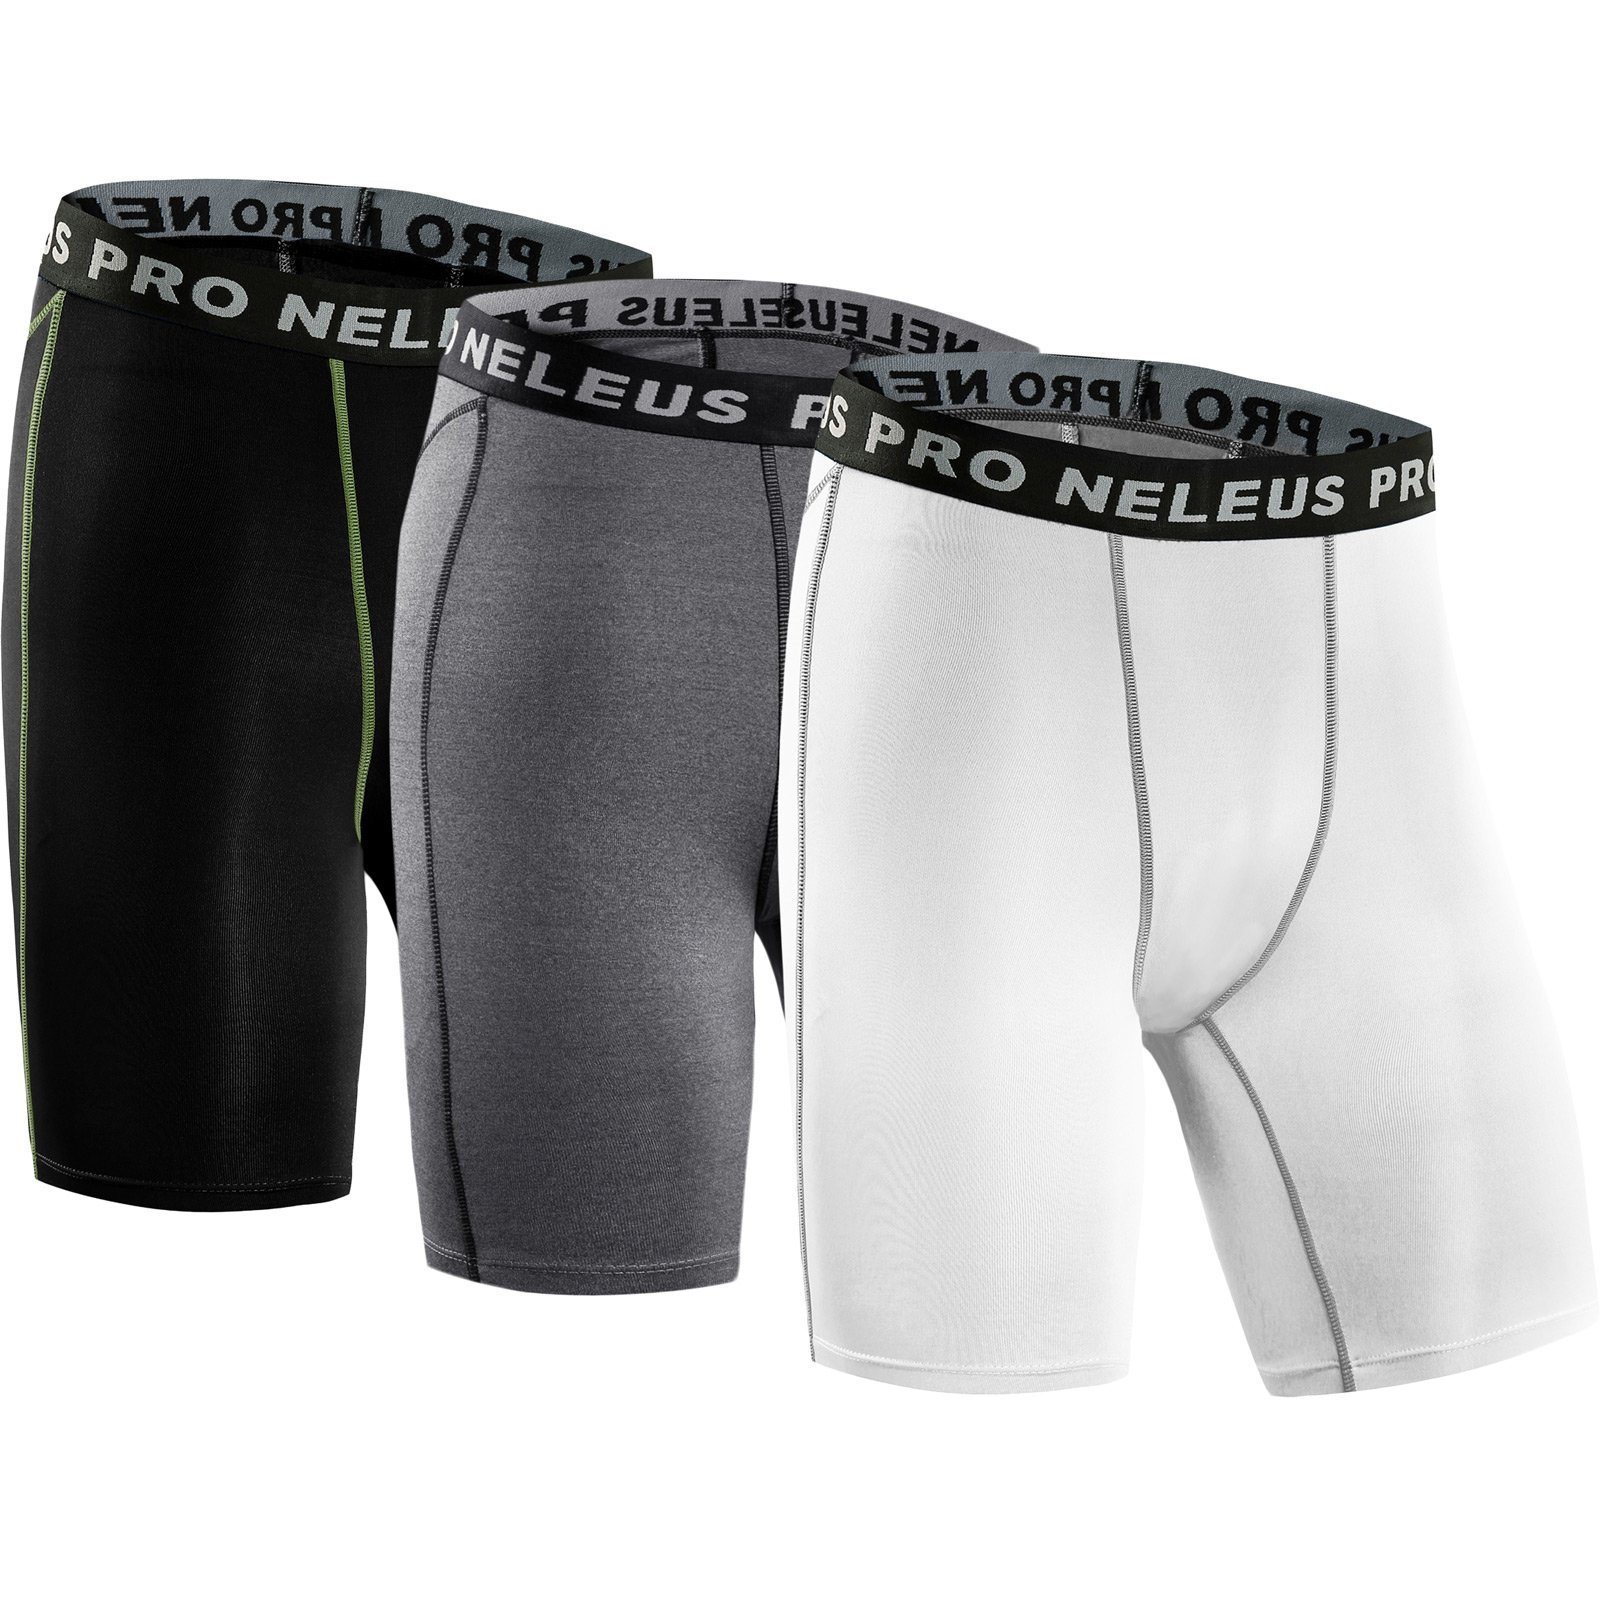 Neleus Men's 3 Pack Compression Short,047,Black,Grey,White,US S,EU M